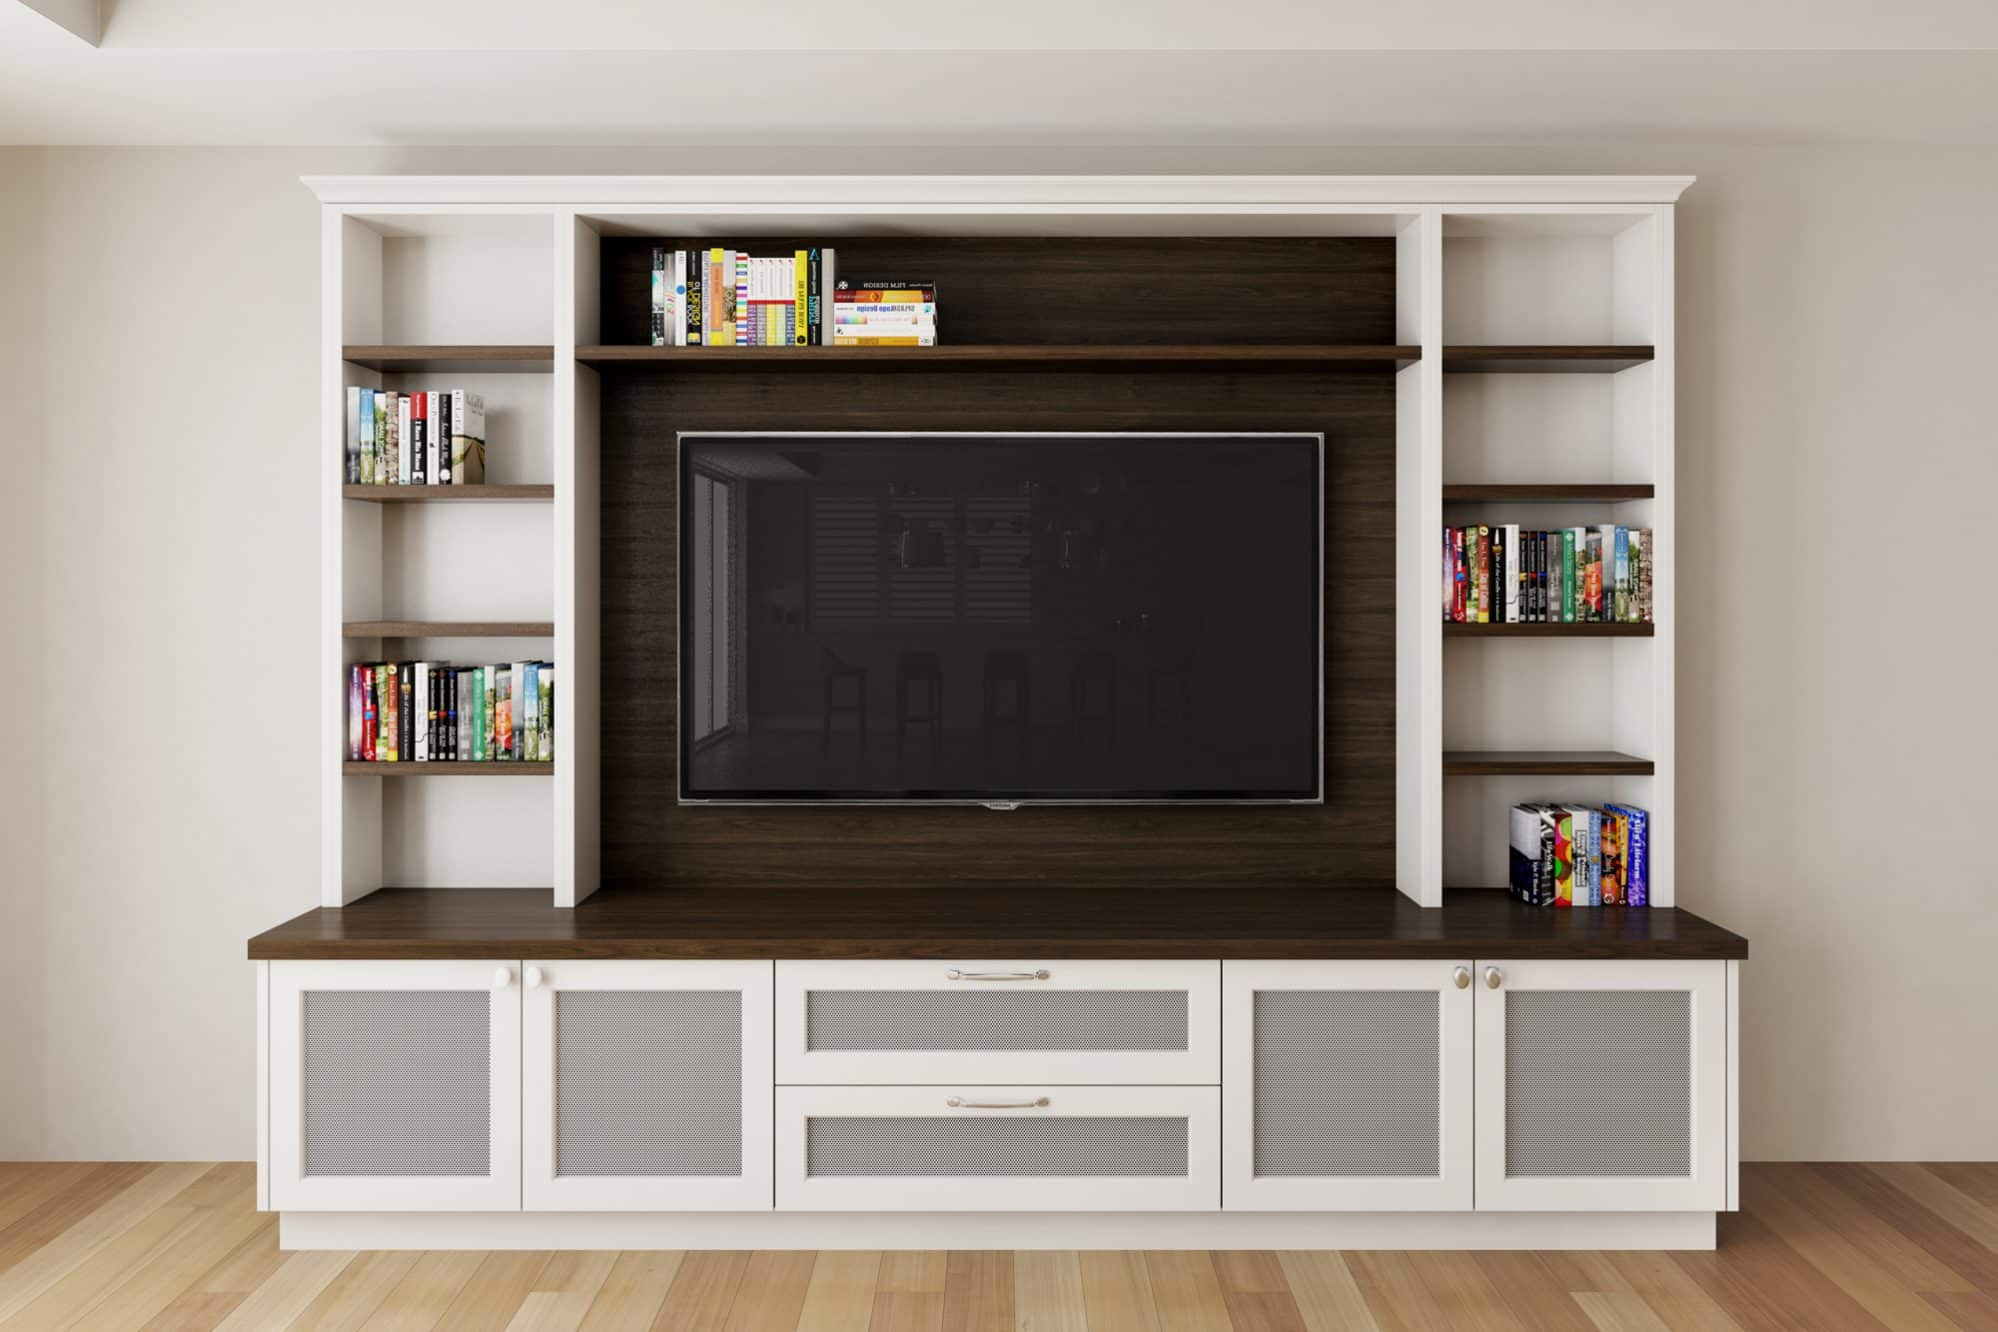 Artist's impression of the TV unit